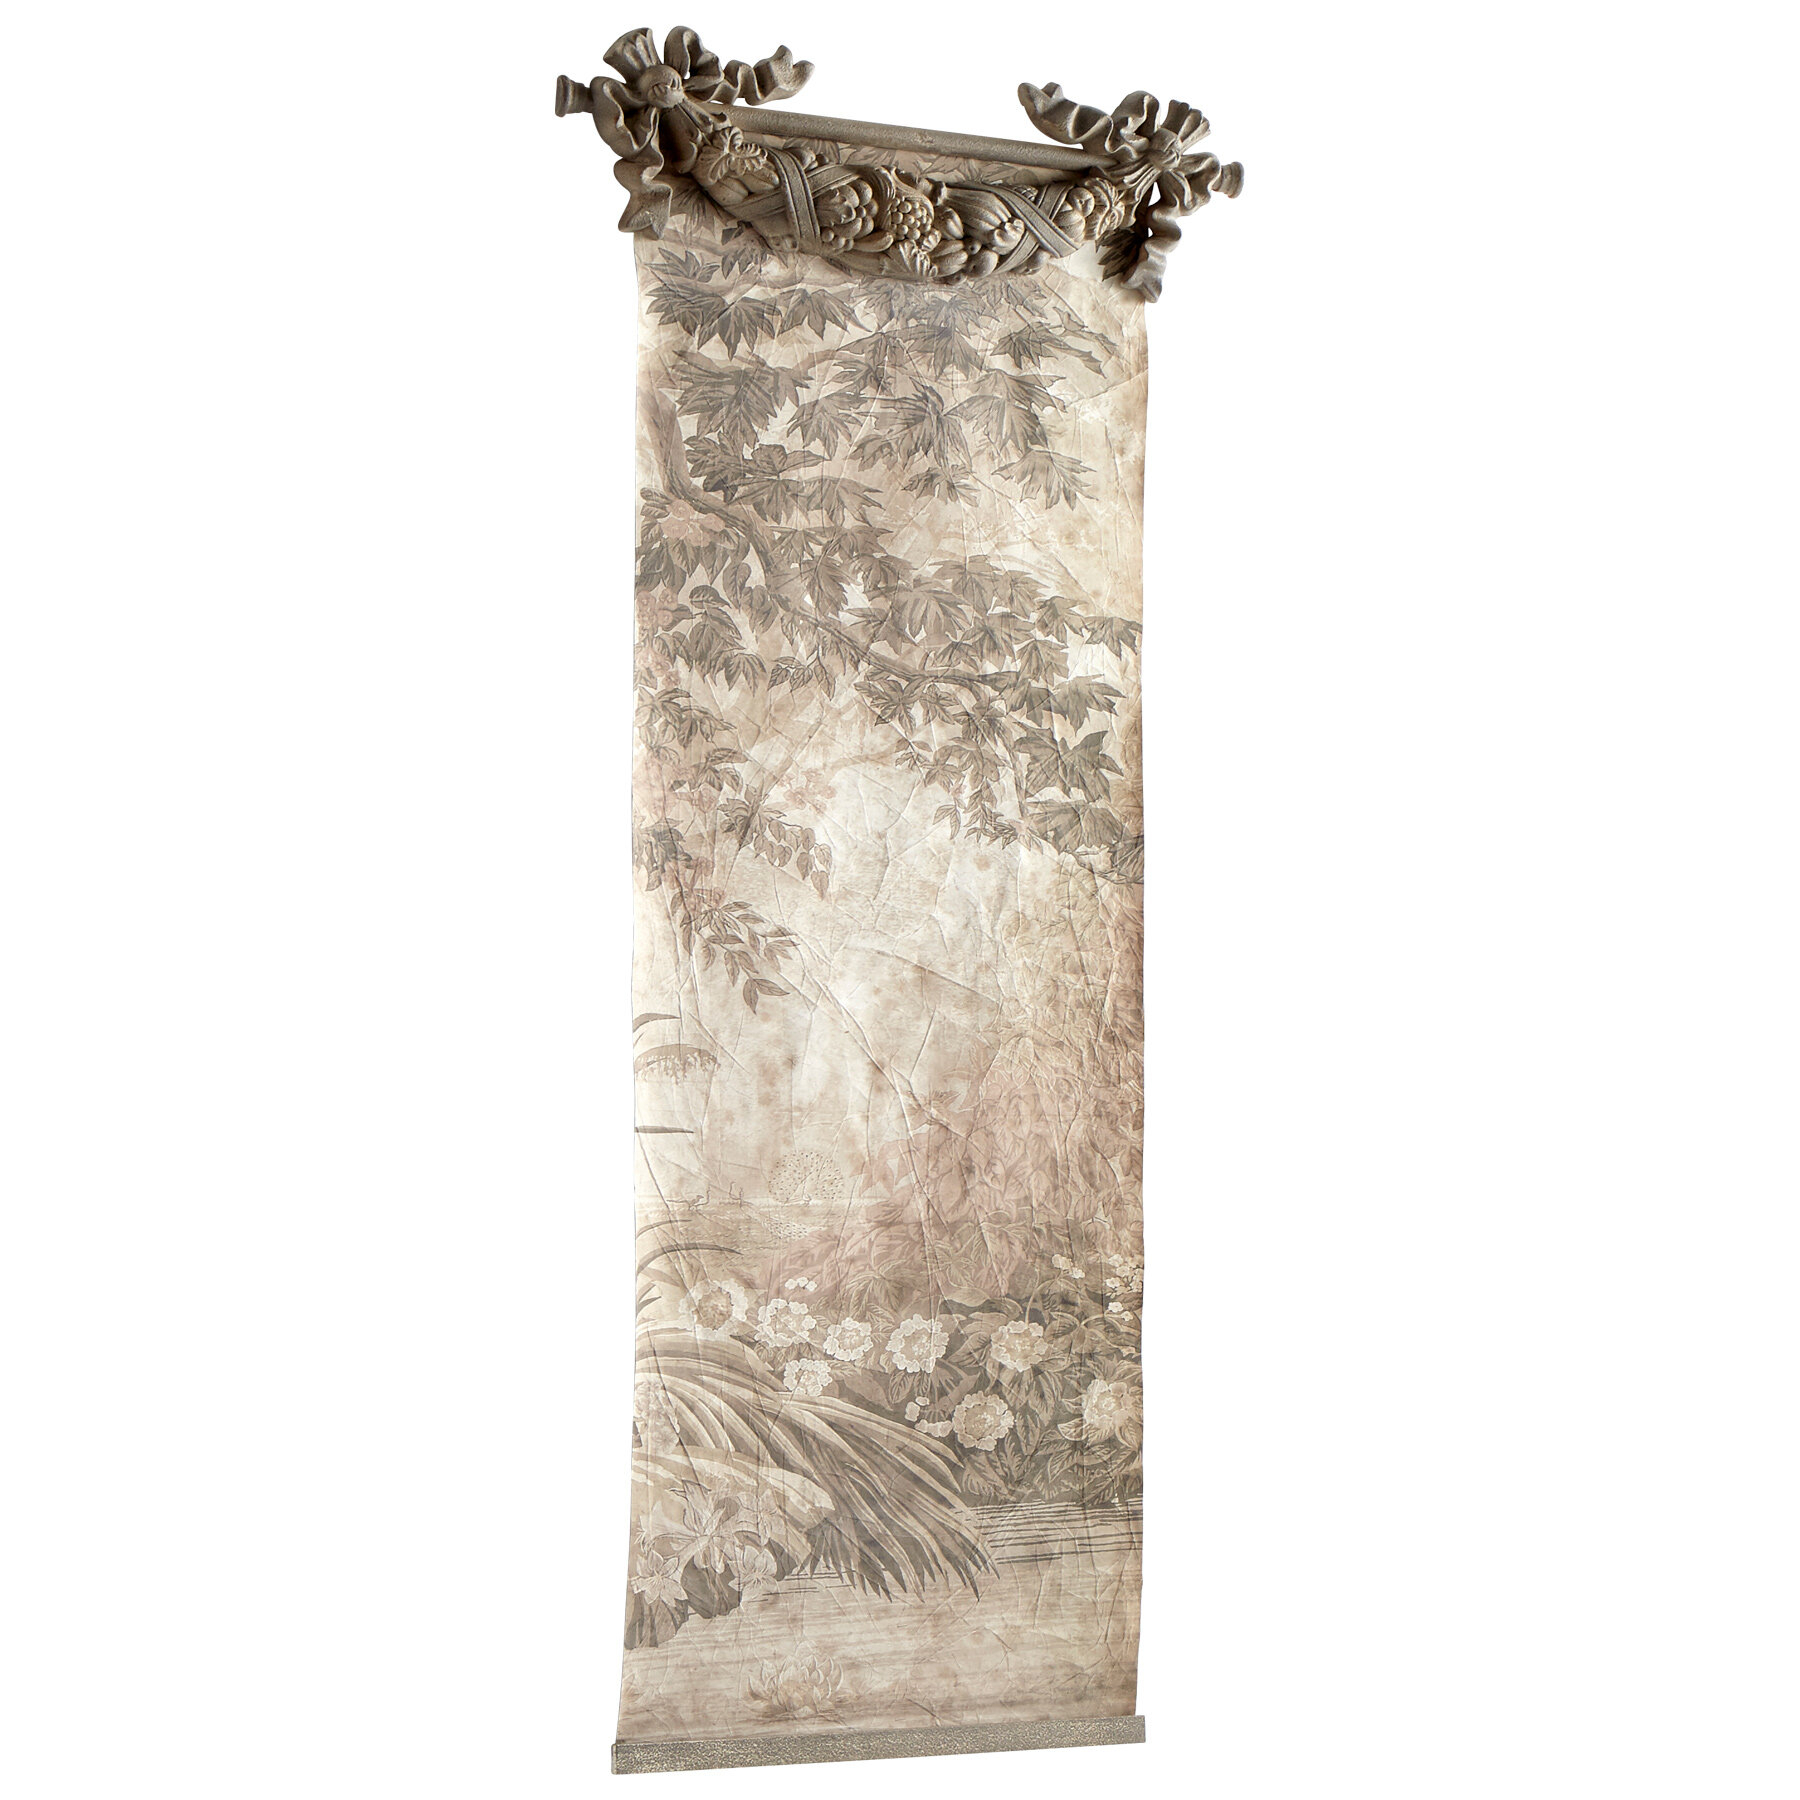 Blended Fabric Hidden Garden Chinoiserie Wall Hanging With Rod Pertaining To 2017 Blended Fabric Ethereal Days Chinoiserie Wall Hangings With Rod (View 2 of 20)